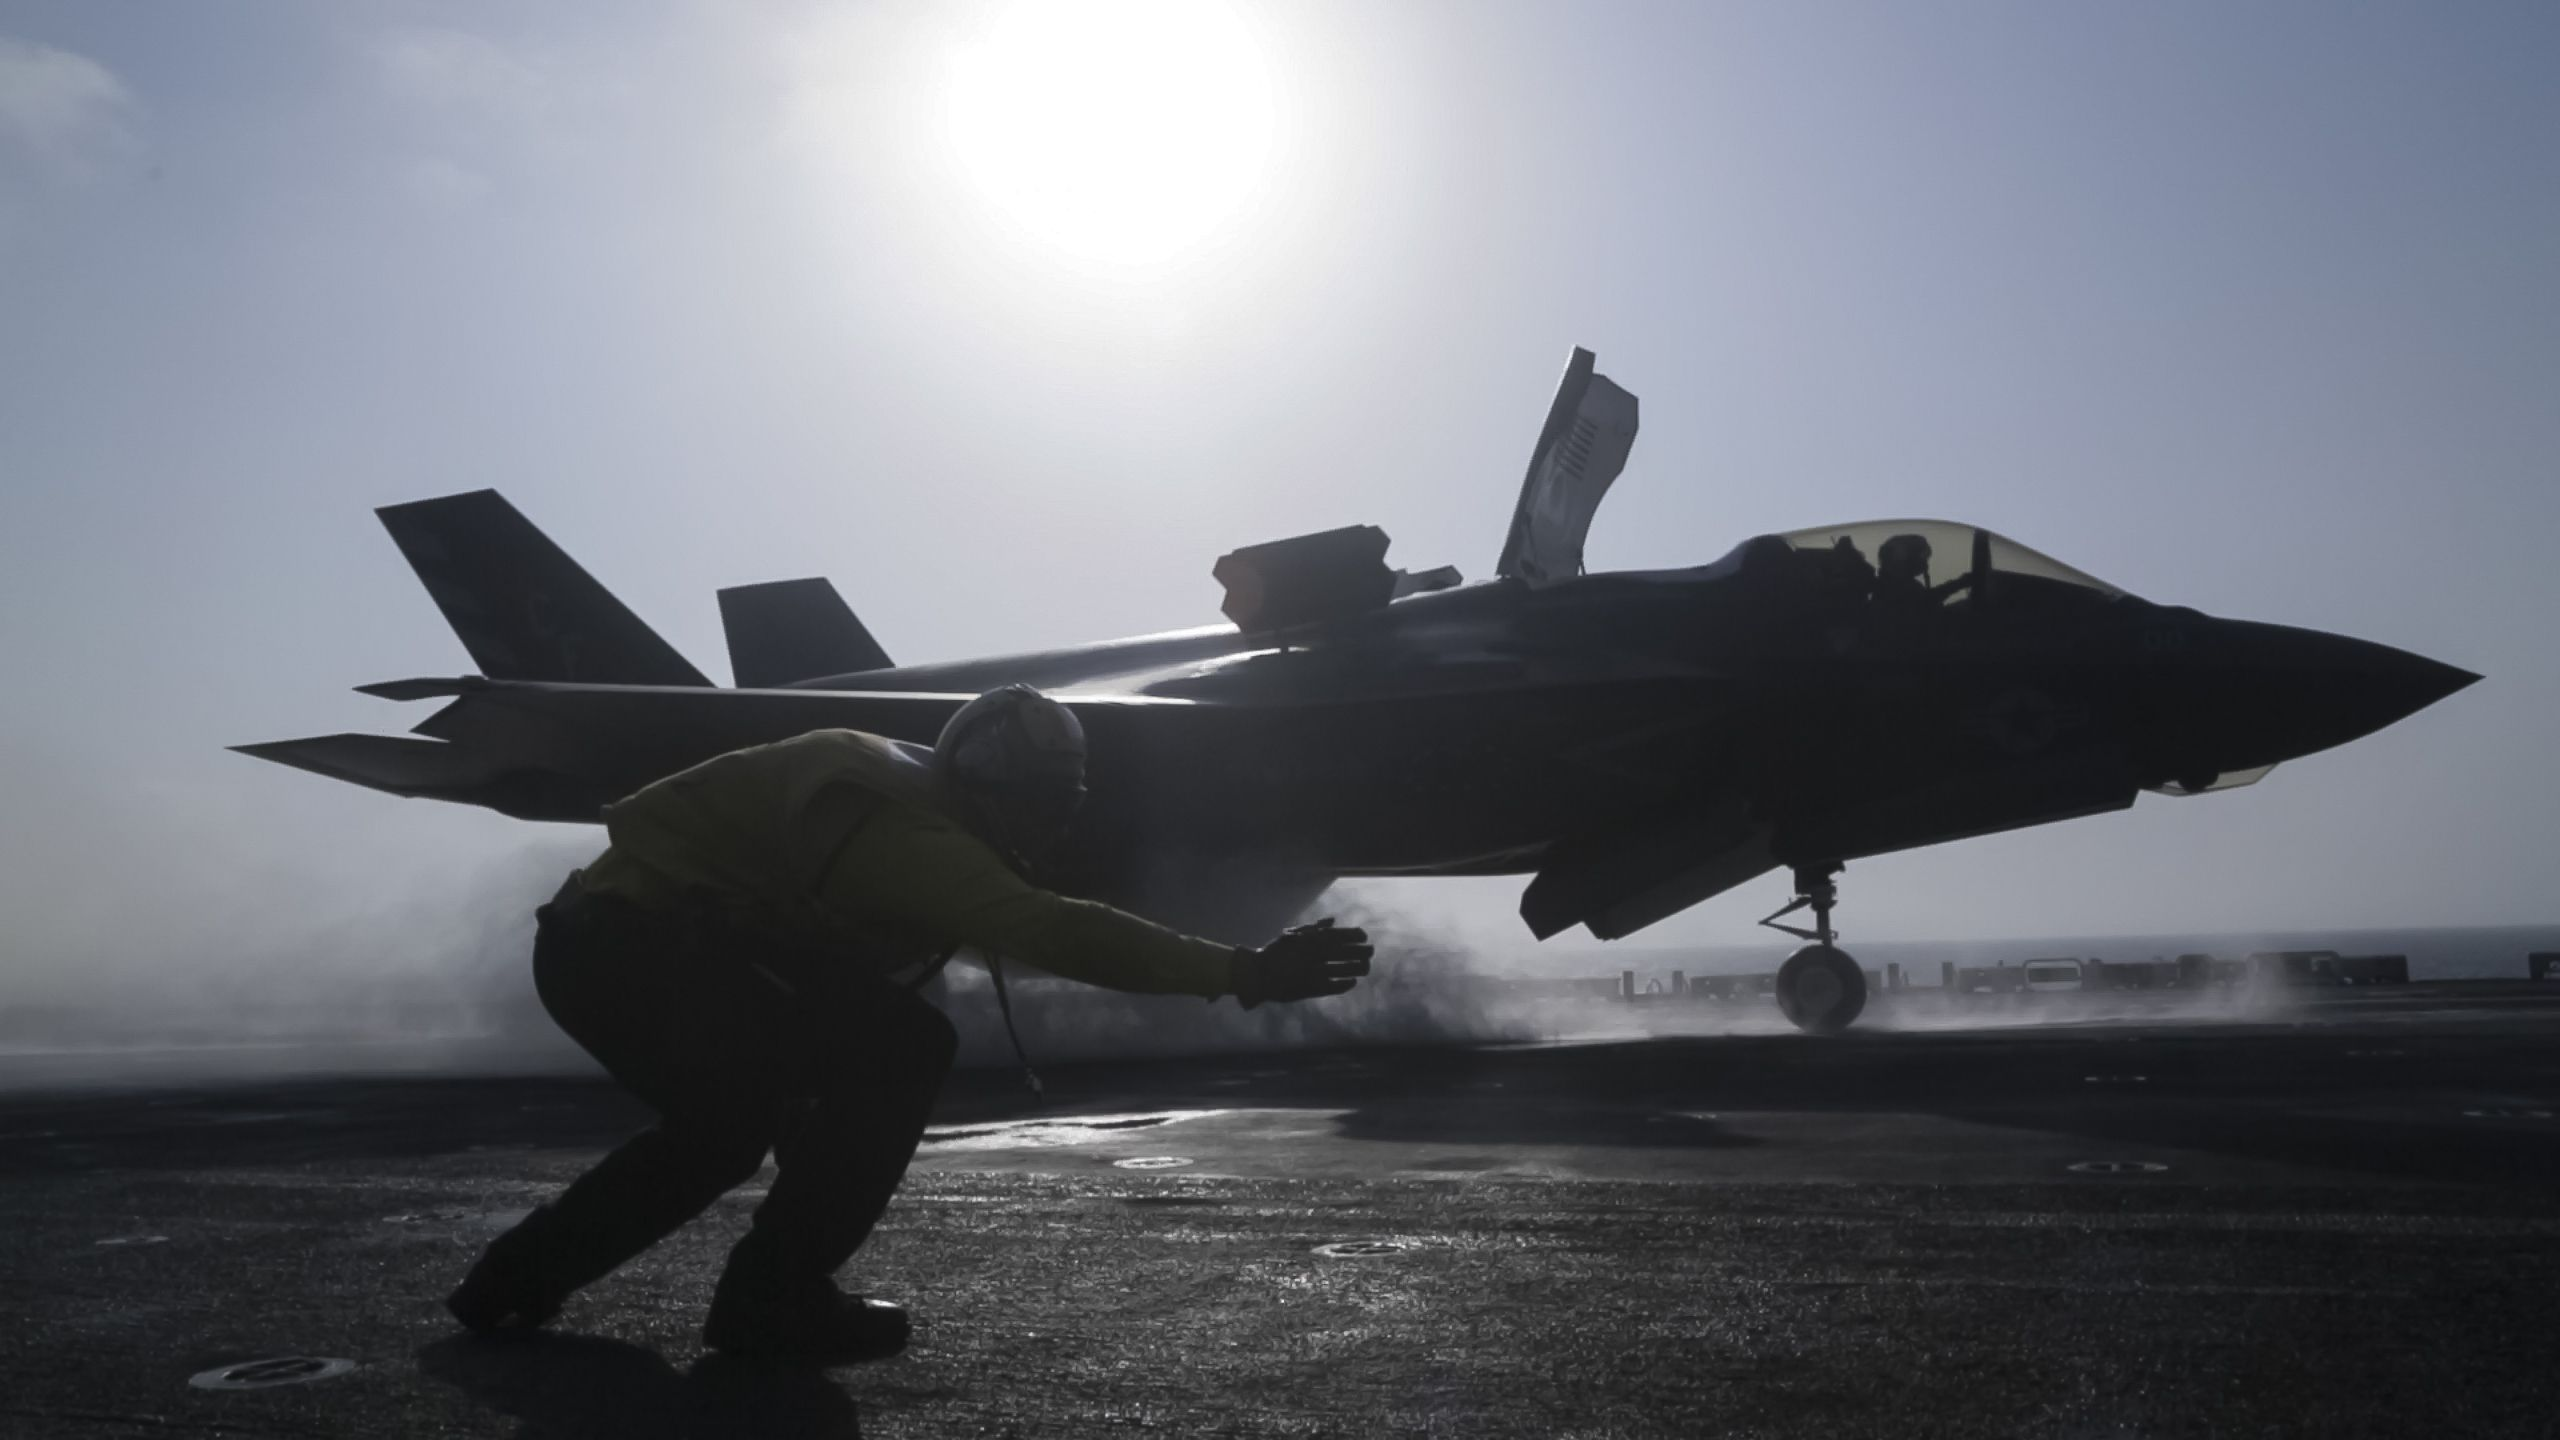 The Pentagon's 2020 Budget Asks for Nearly 380 Aircraft, But One Buy